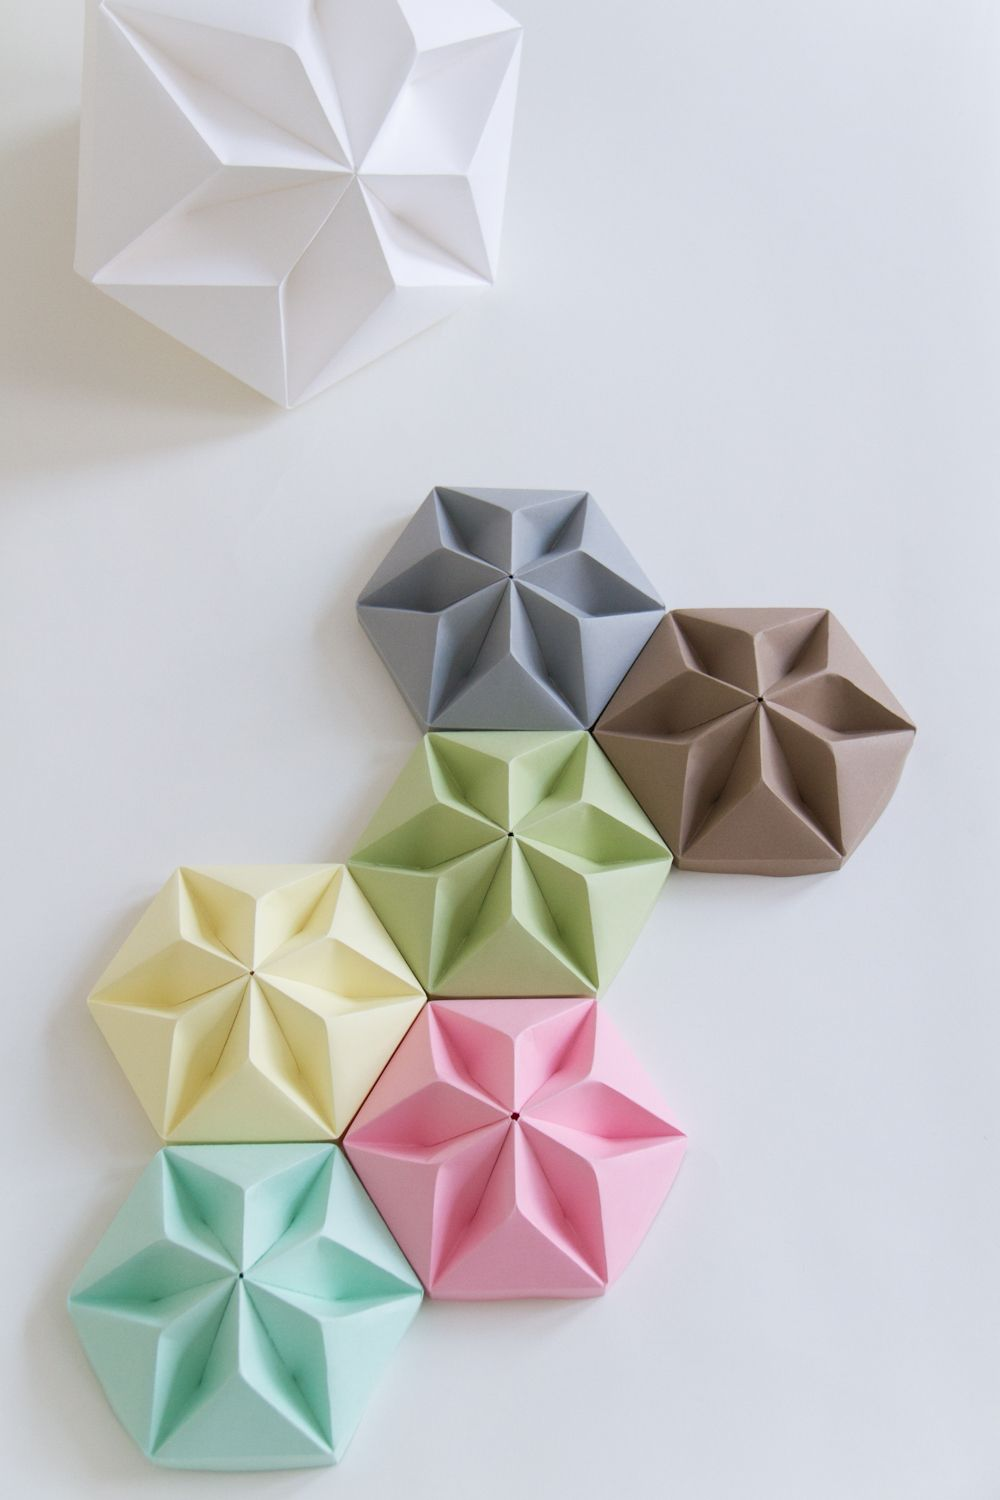 40 origami flowers you can do flower origami paper and origami ideas 40 origami flowers you can do mightylinksfo